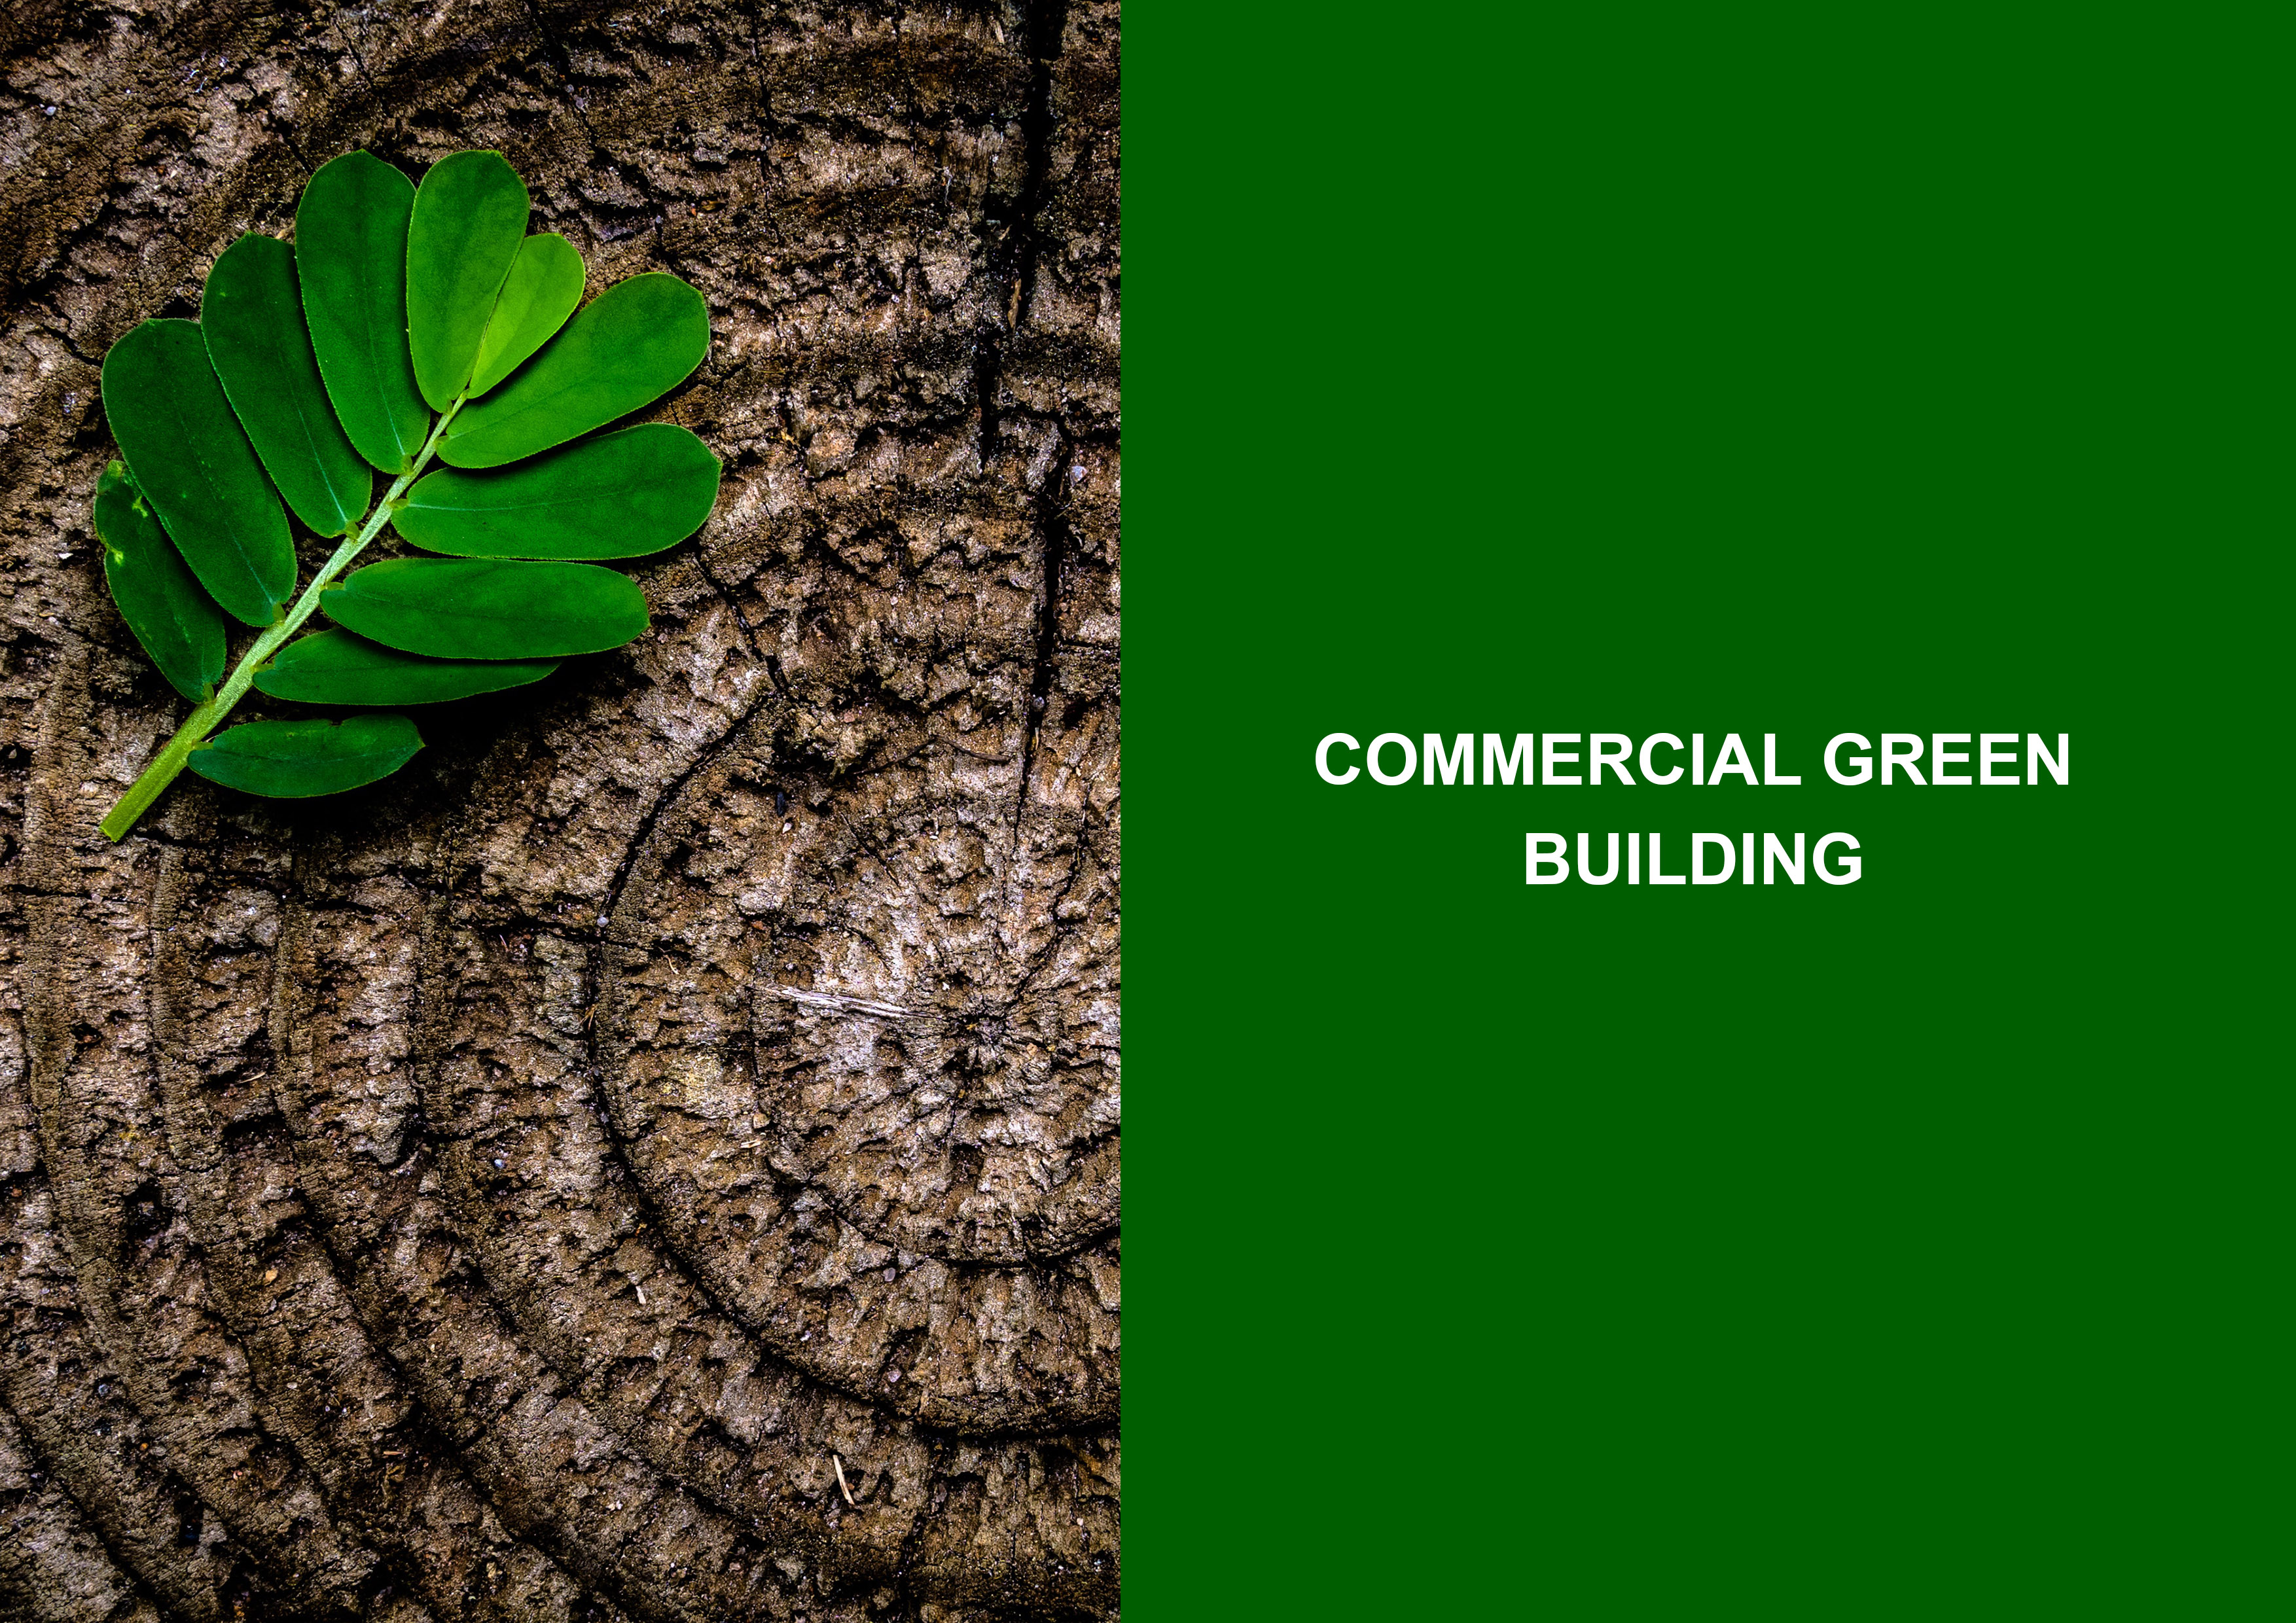 Commercial Green Buildings